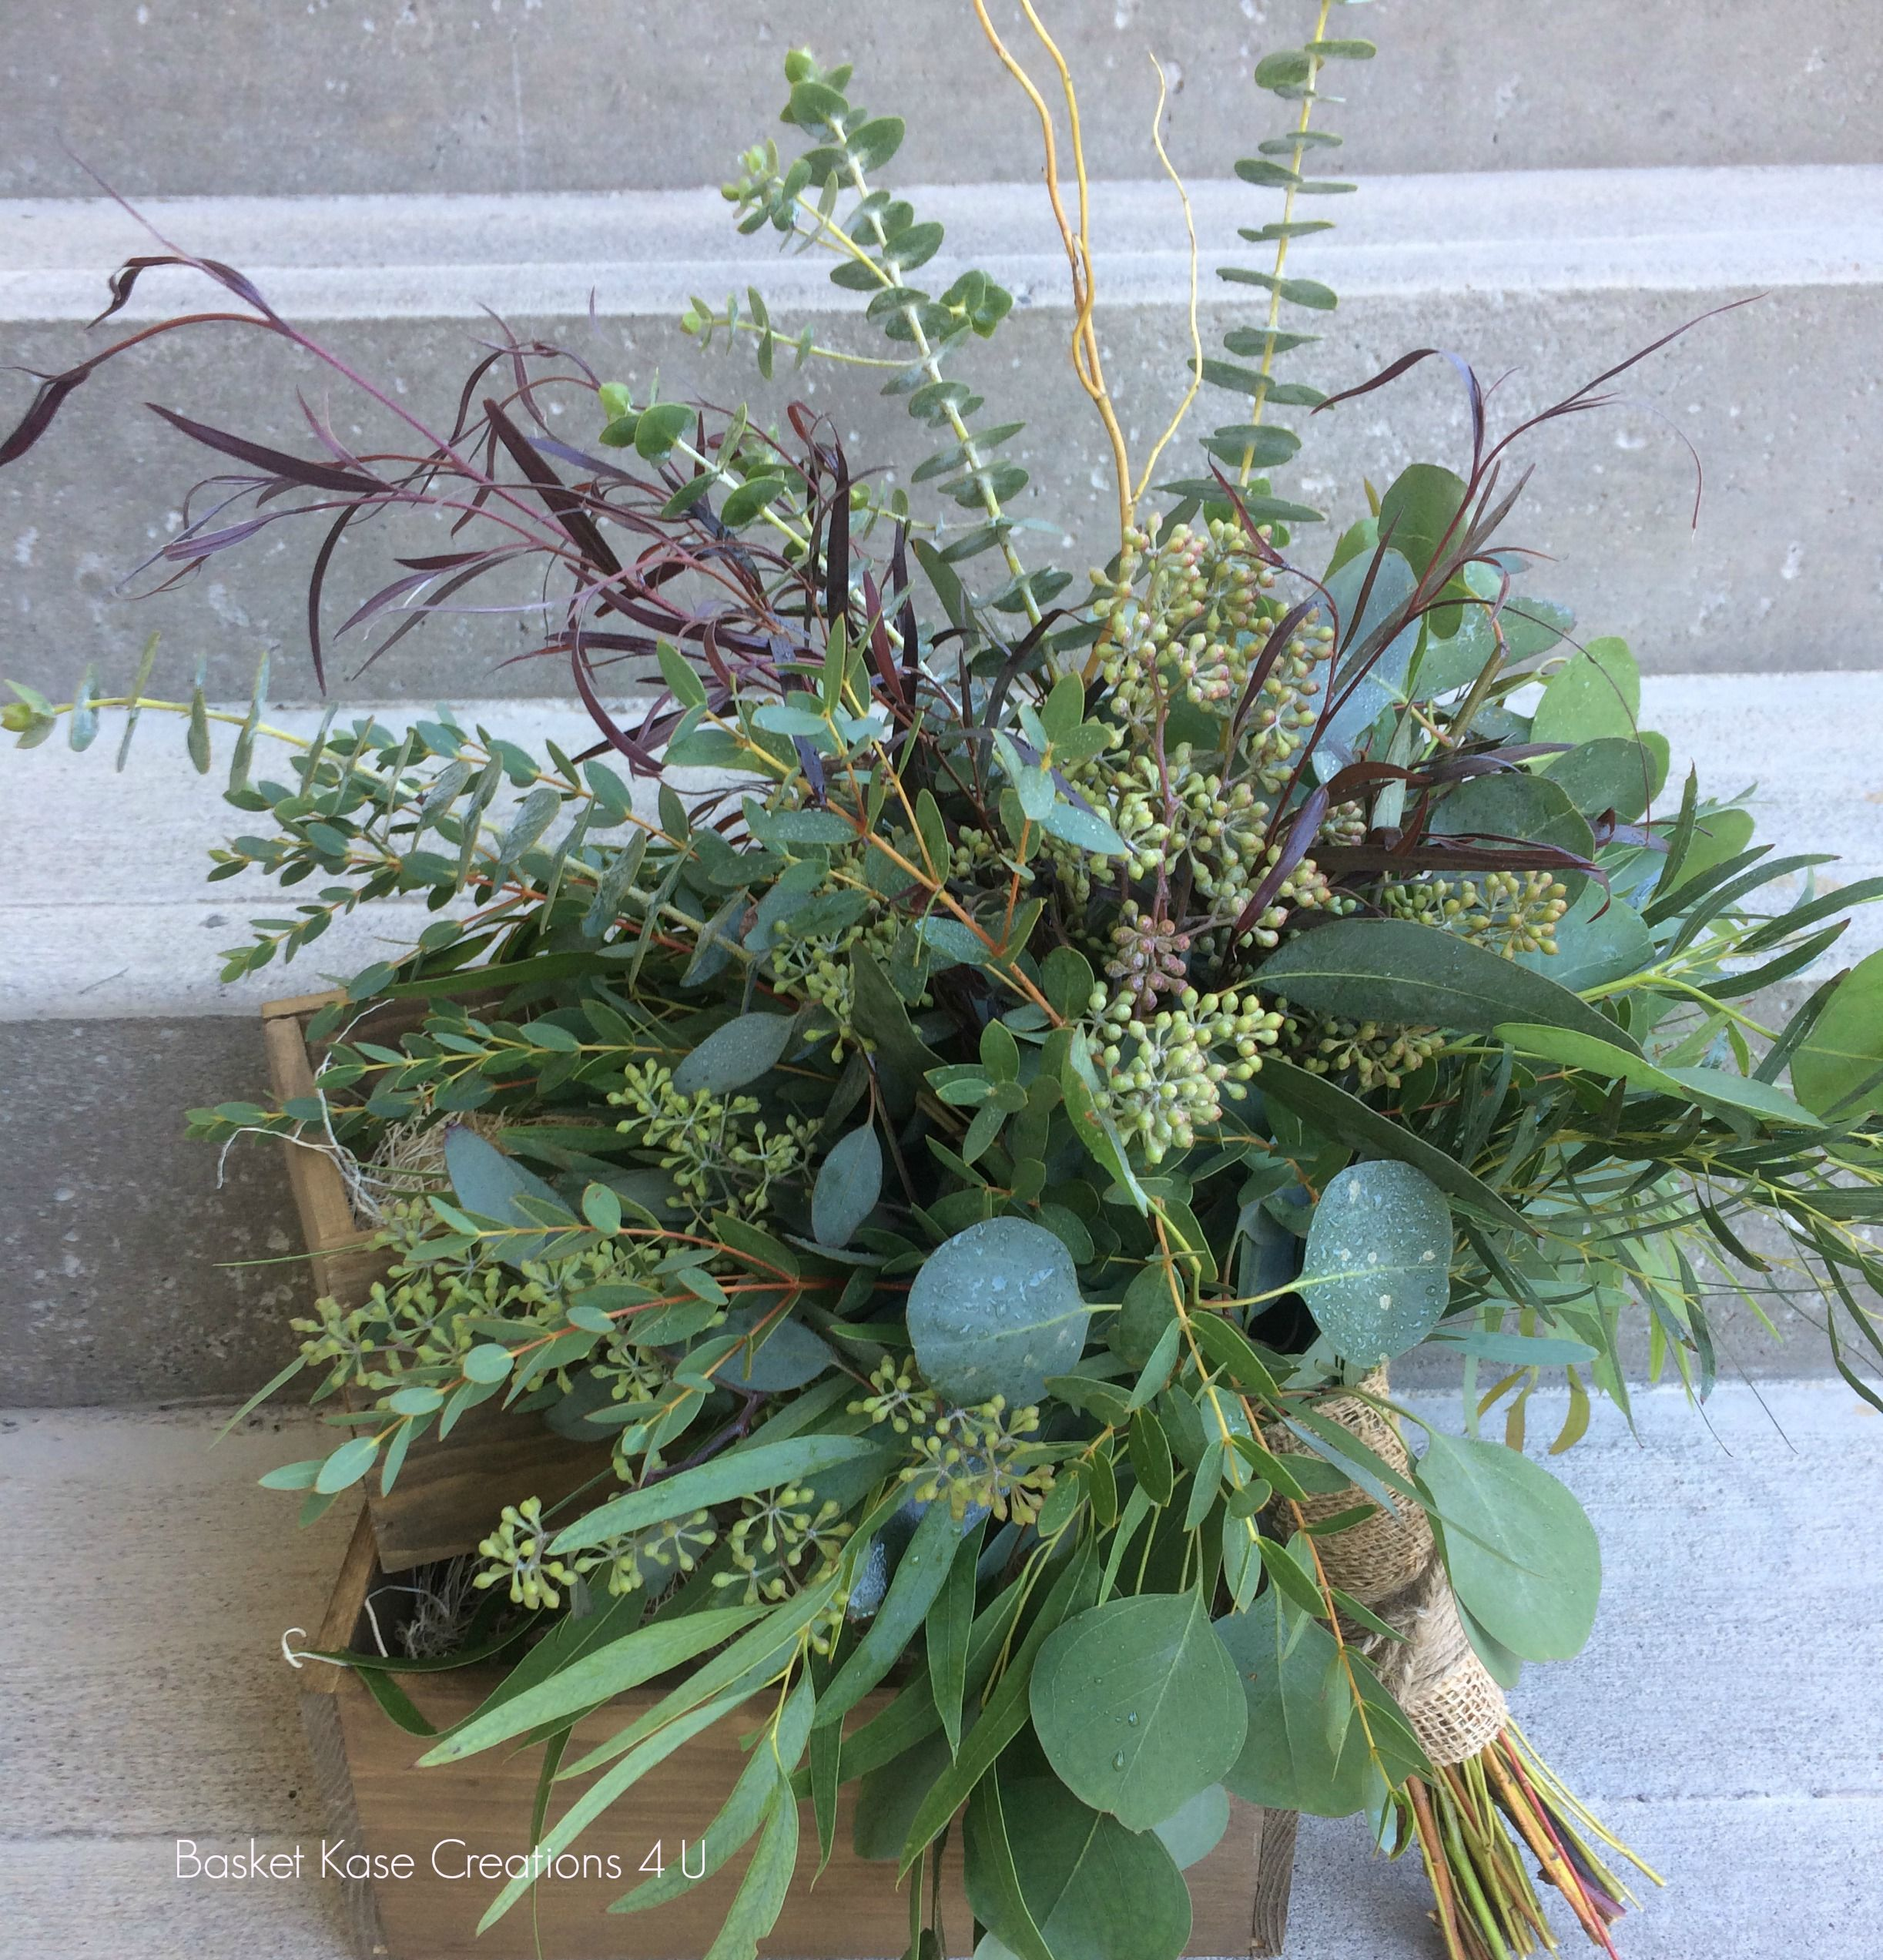 Full Foliage Bridesmaid Bouquet No Flowers Needed For This Beauty 5 Varieties Of Eucalyptus Curly Willow Agonis Finishe With A Jute Wrap